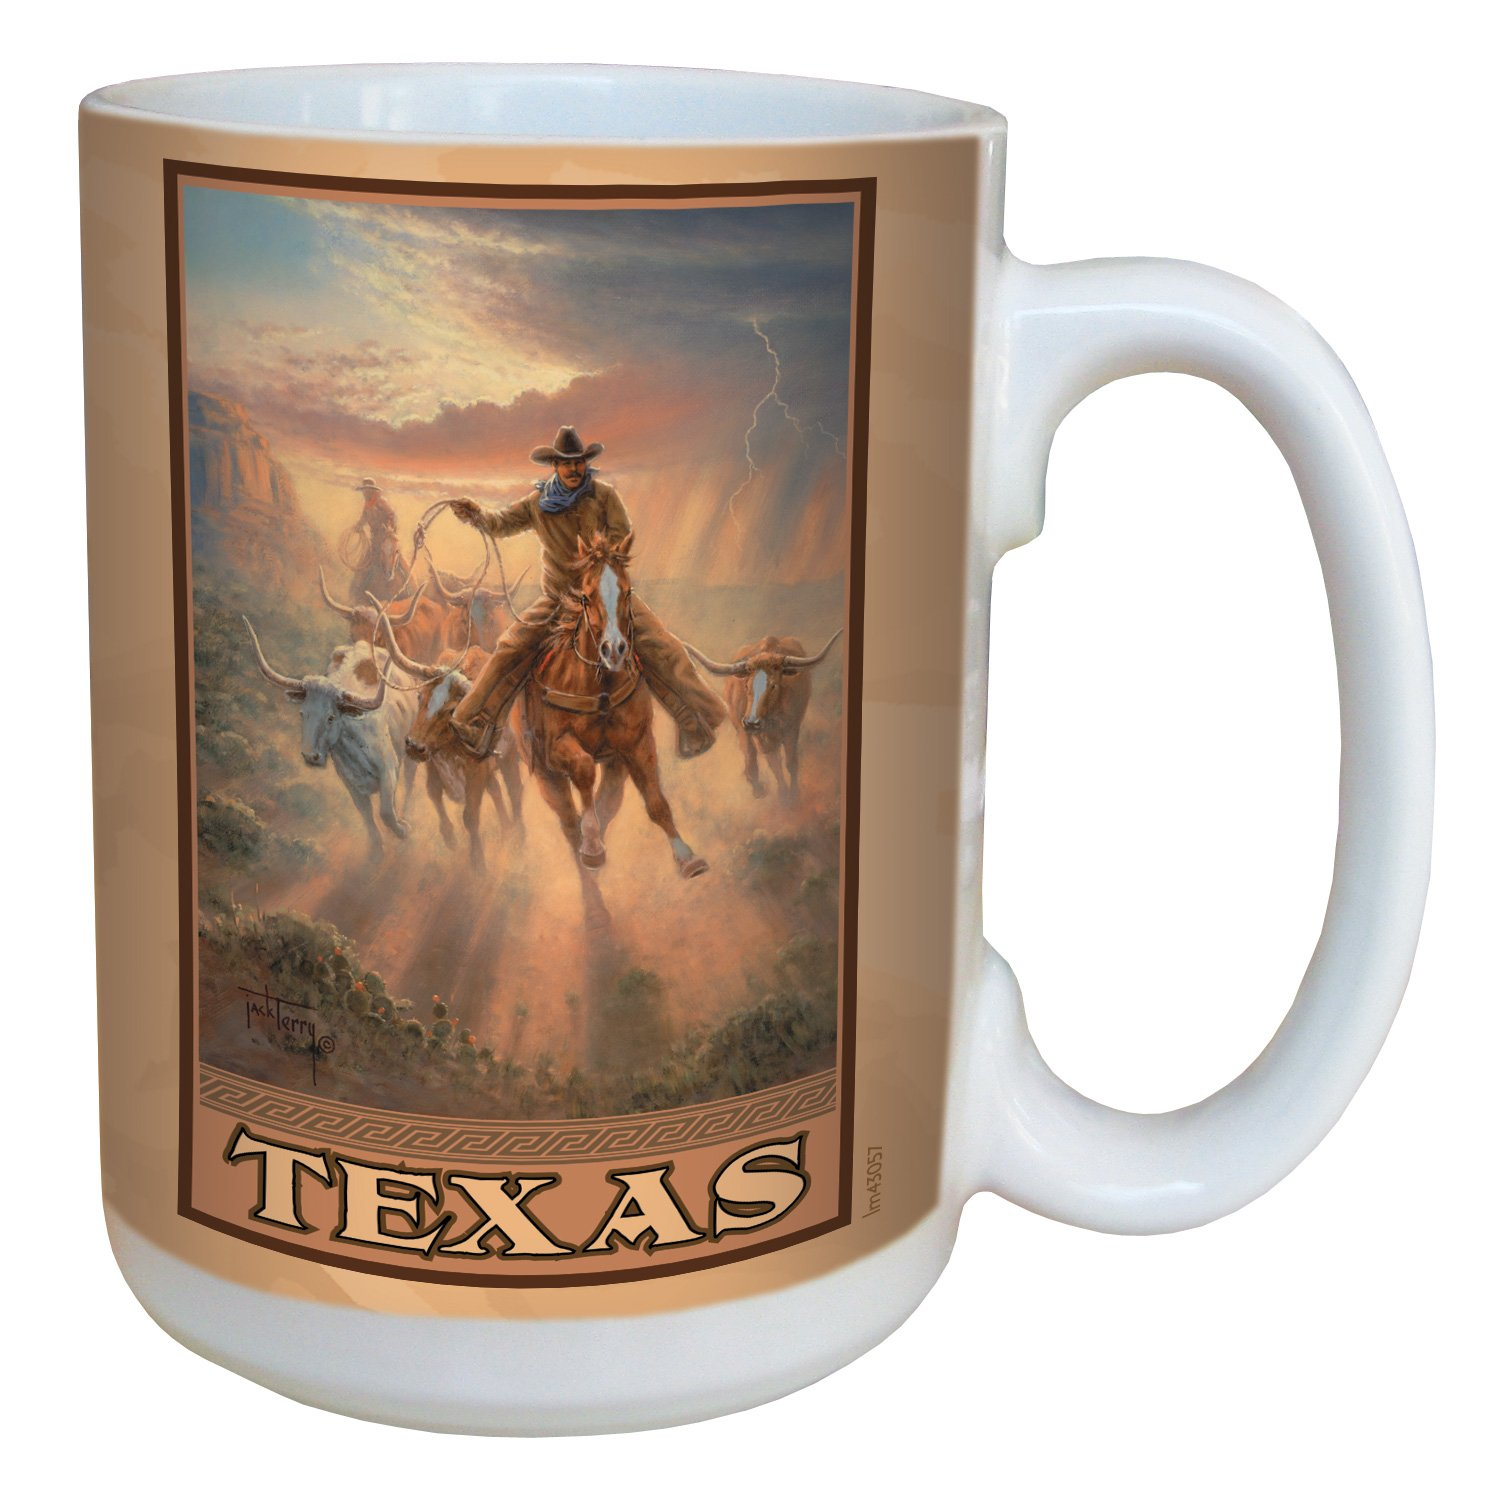 Multicolored Tree Free 15-Ounce Tree-Free Greetings lm43057 Vintage Texas Roundup by Jack Terry Ceramic Mug with Full-Sized Handle